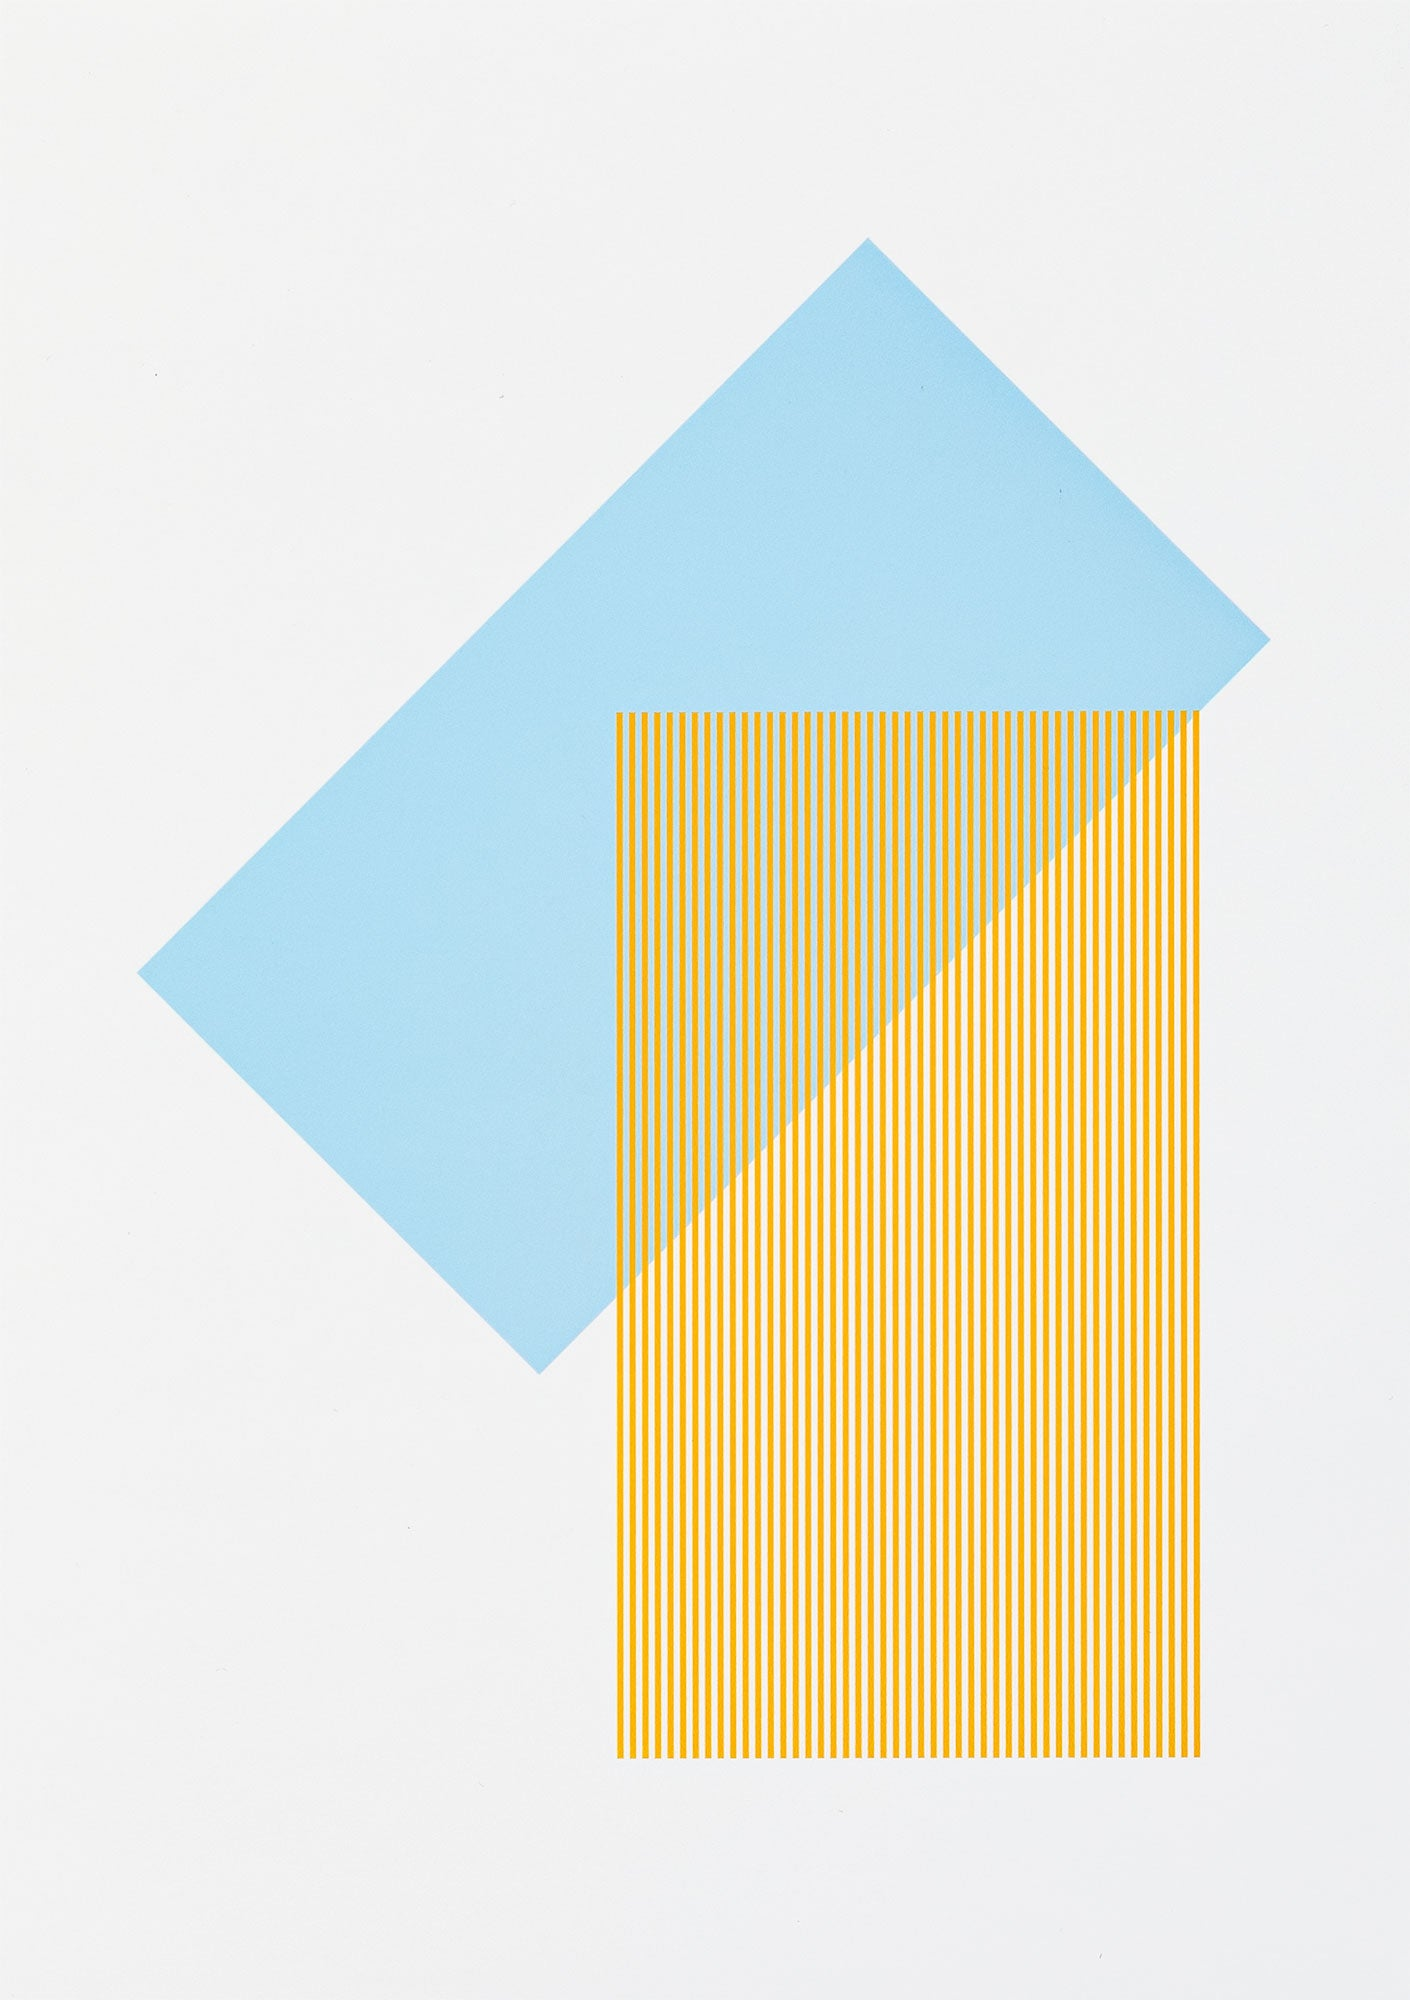 Solids & Strokes – Small – Light Blue & Yellow